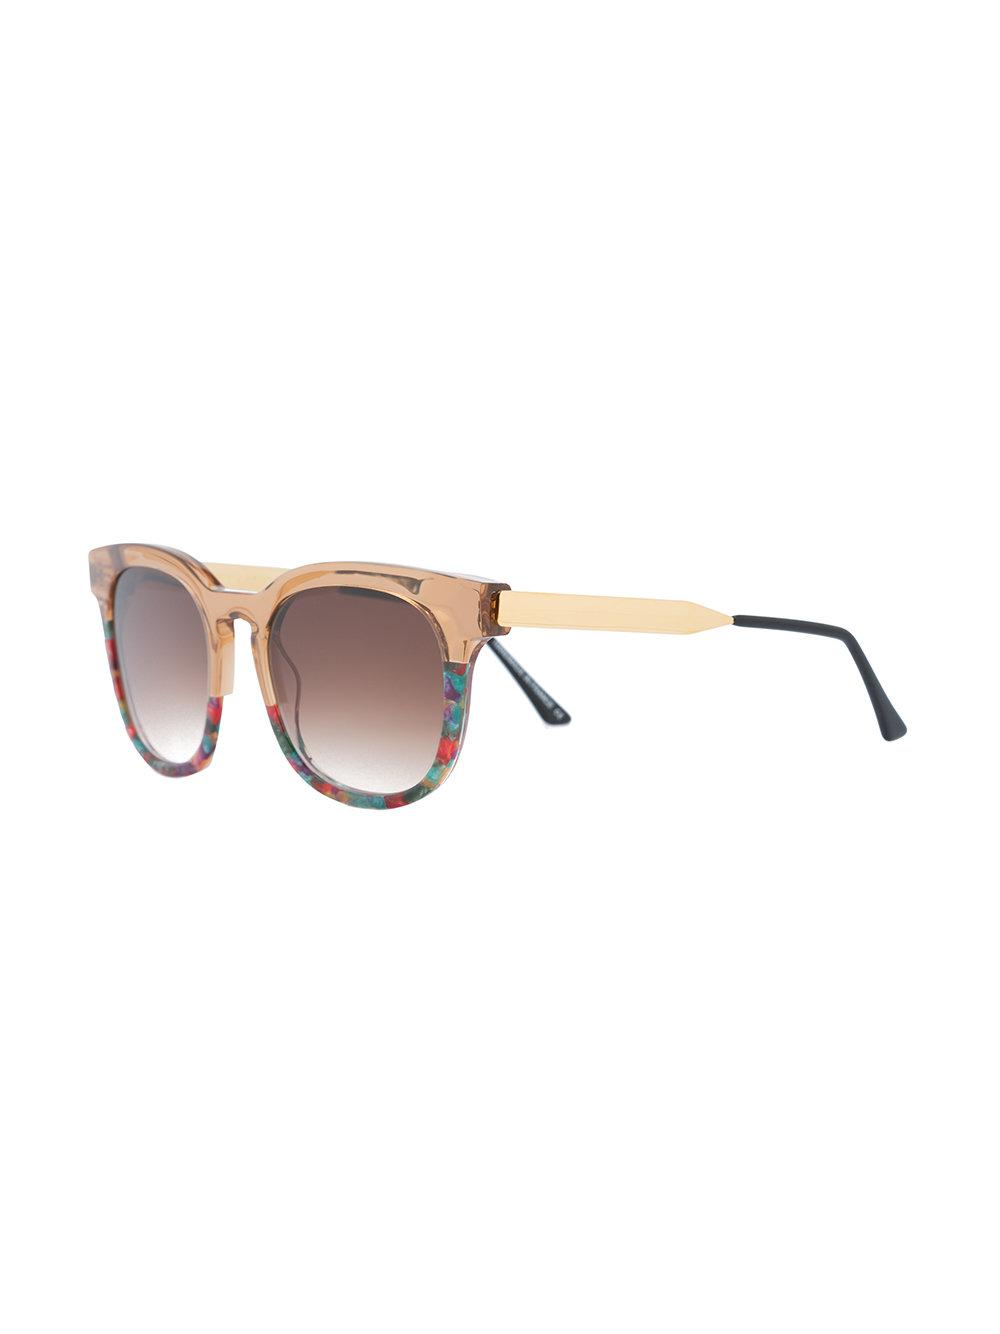 7a692ac5227 Thierry Lasry Printed Square Sunglasses in Metallic - Lyst